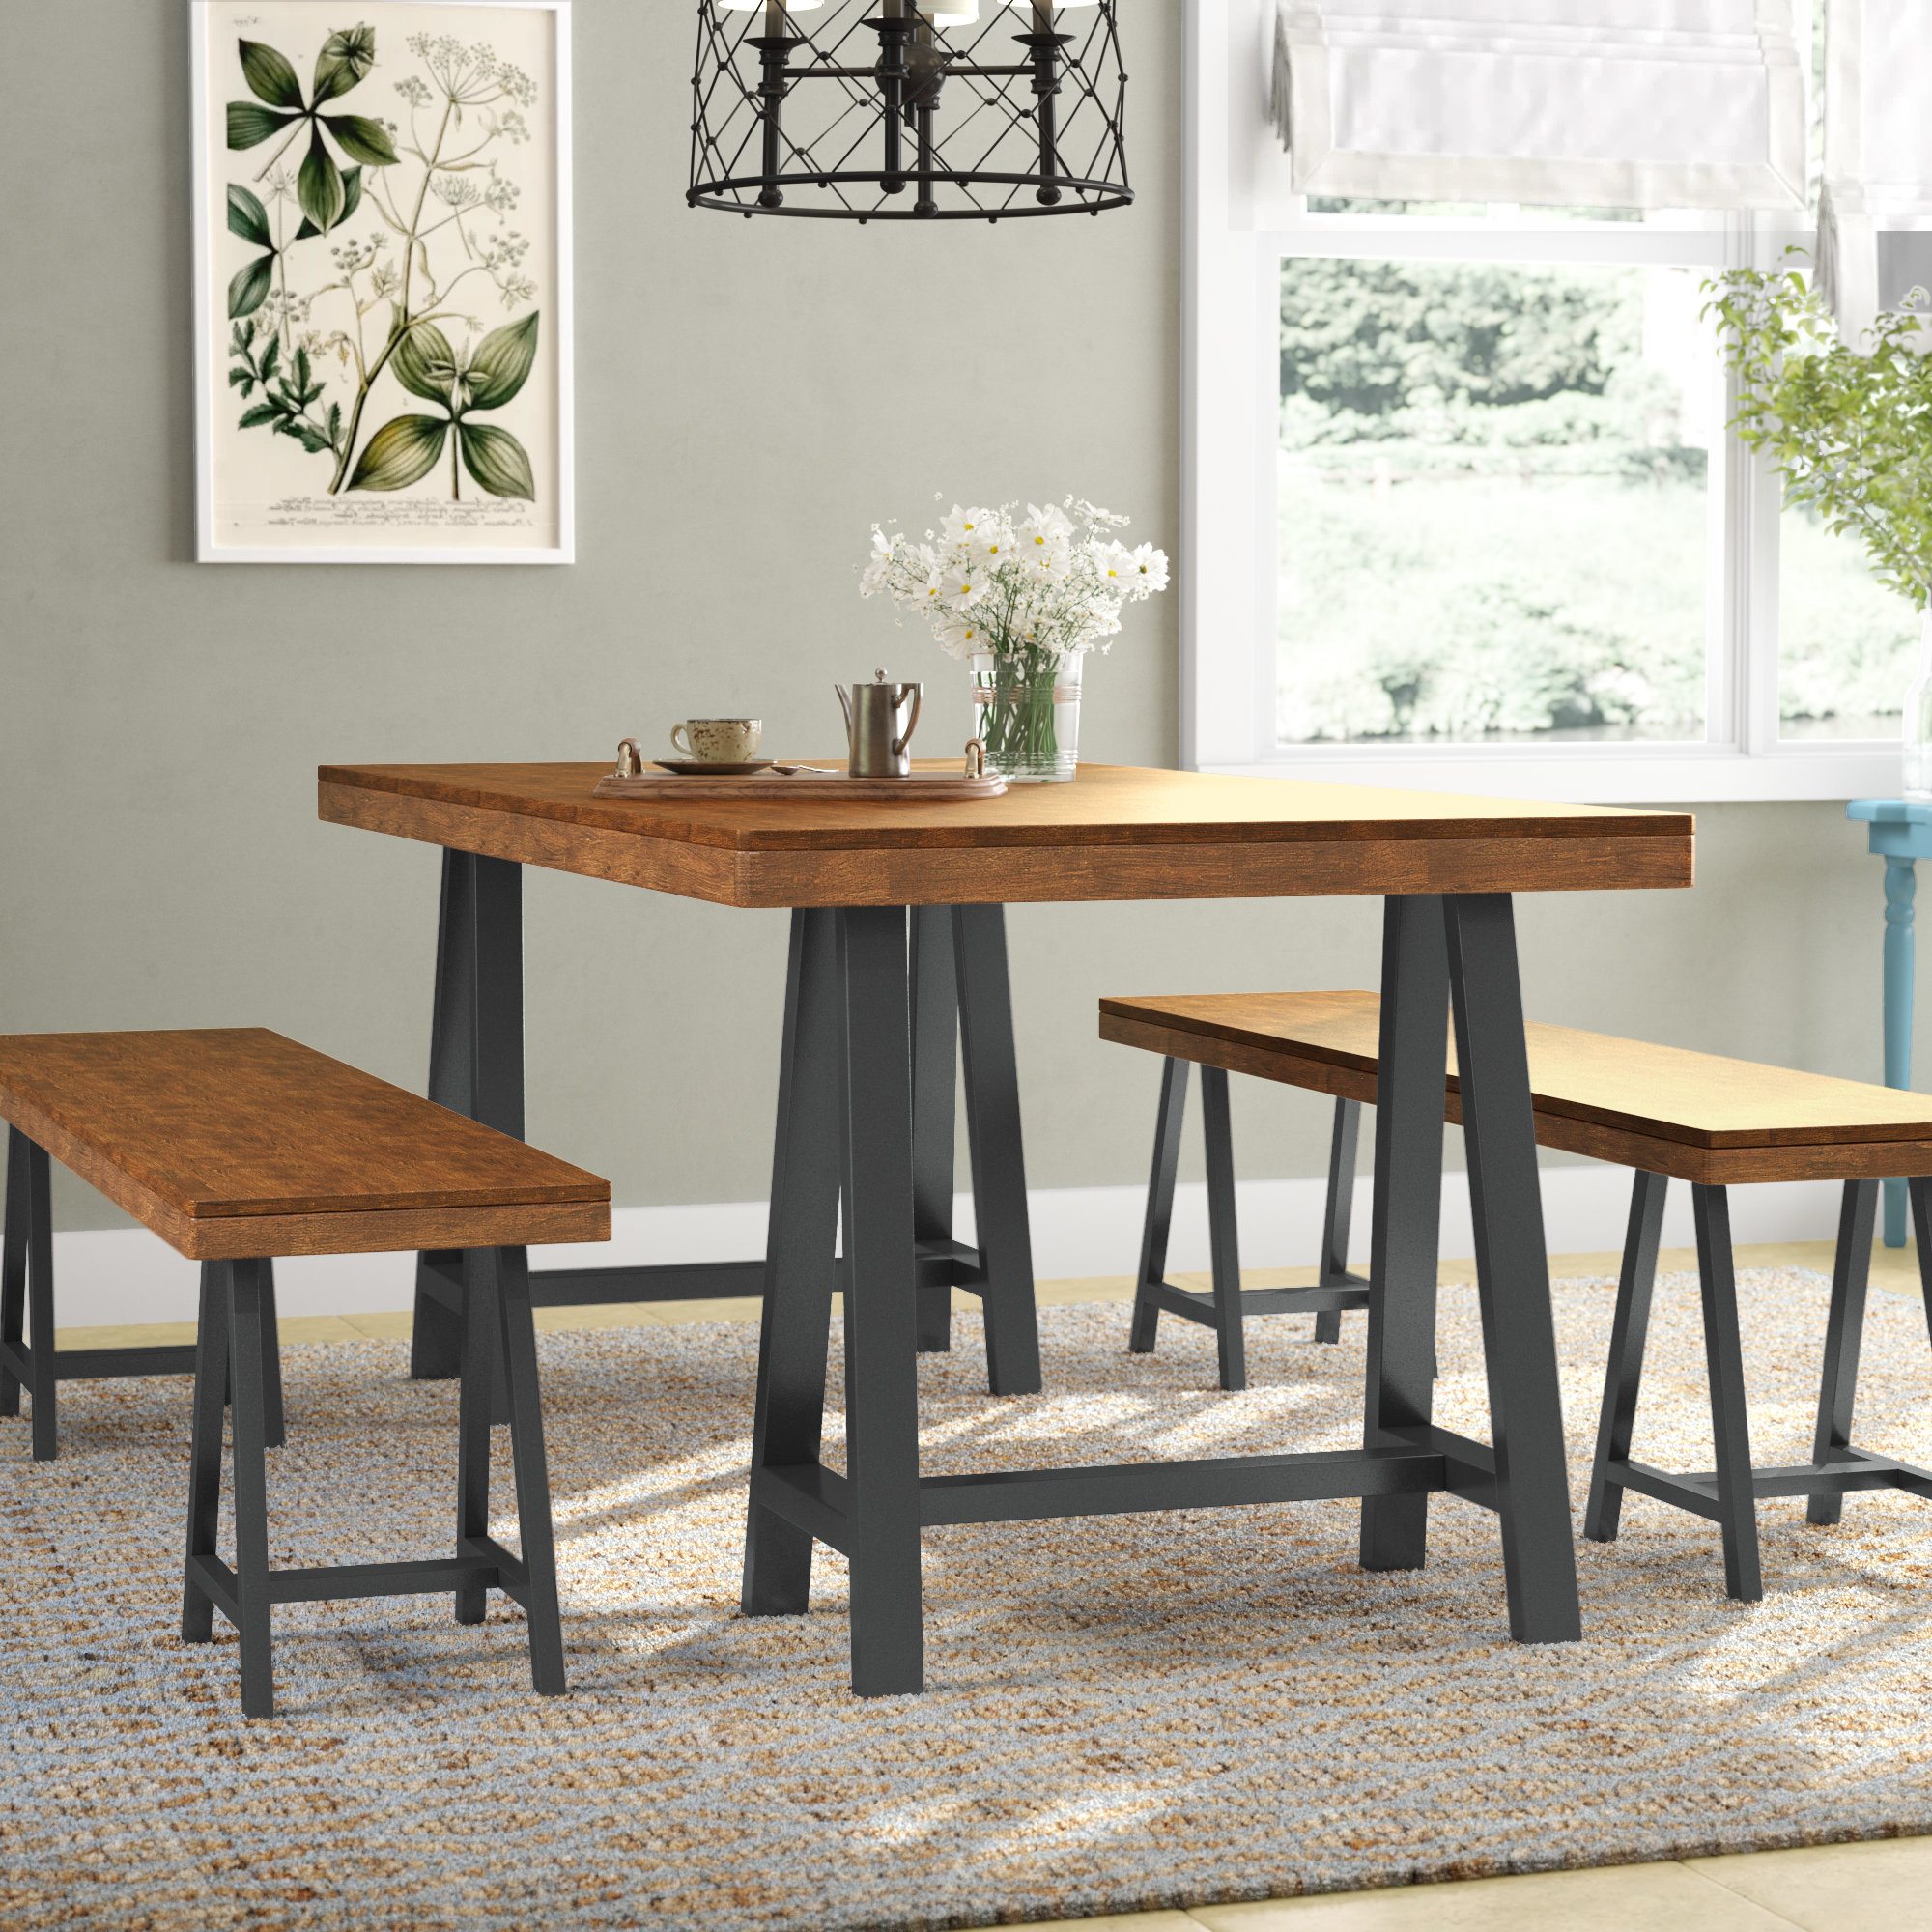 Bearden 3 Piece Dining Sets Within Trendy Mannino Wood Picnic 3 Piece Dining Set (Gallery 17 of 20)